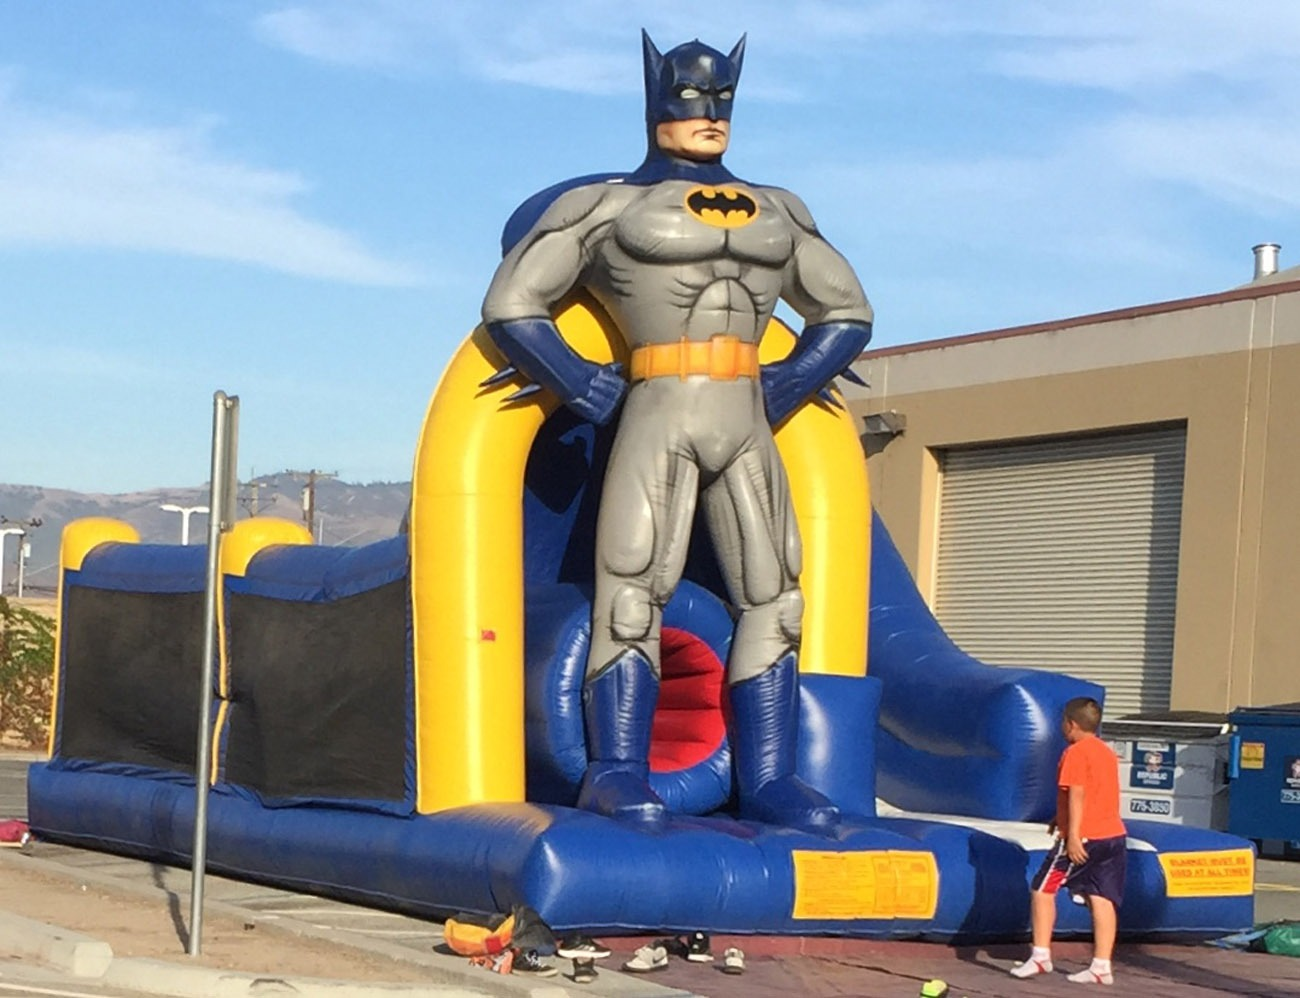 Batman Inflatable Obstacle Course Lets Party